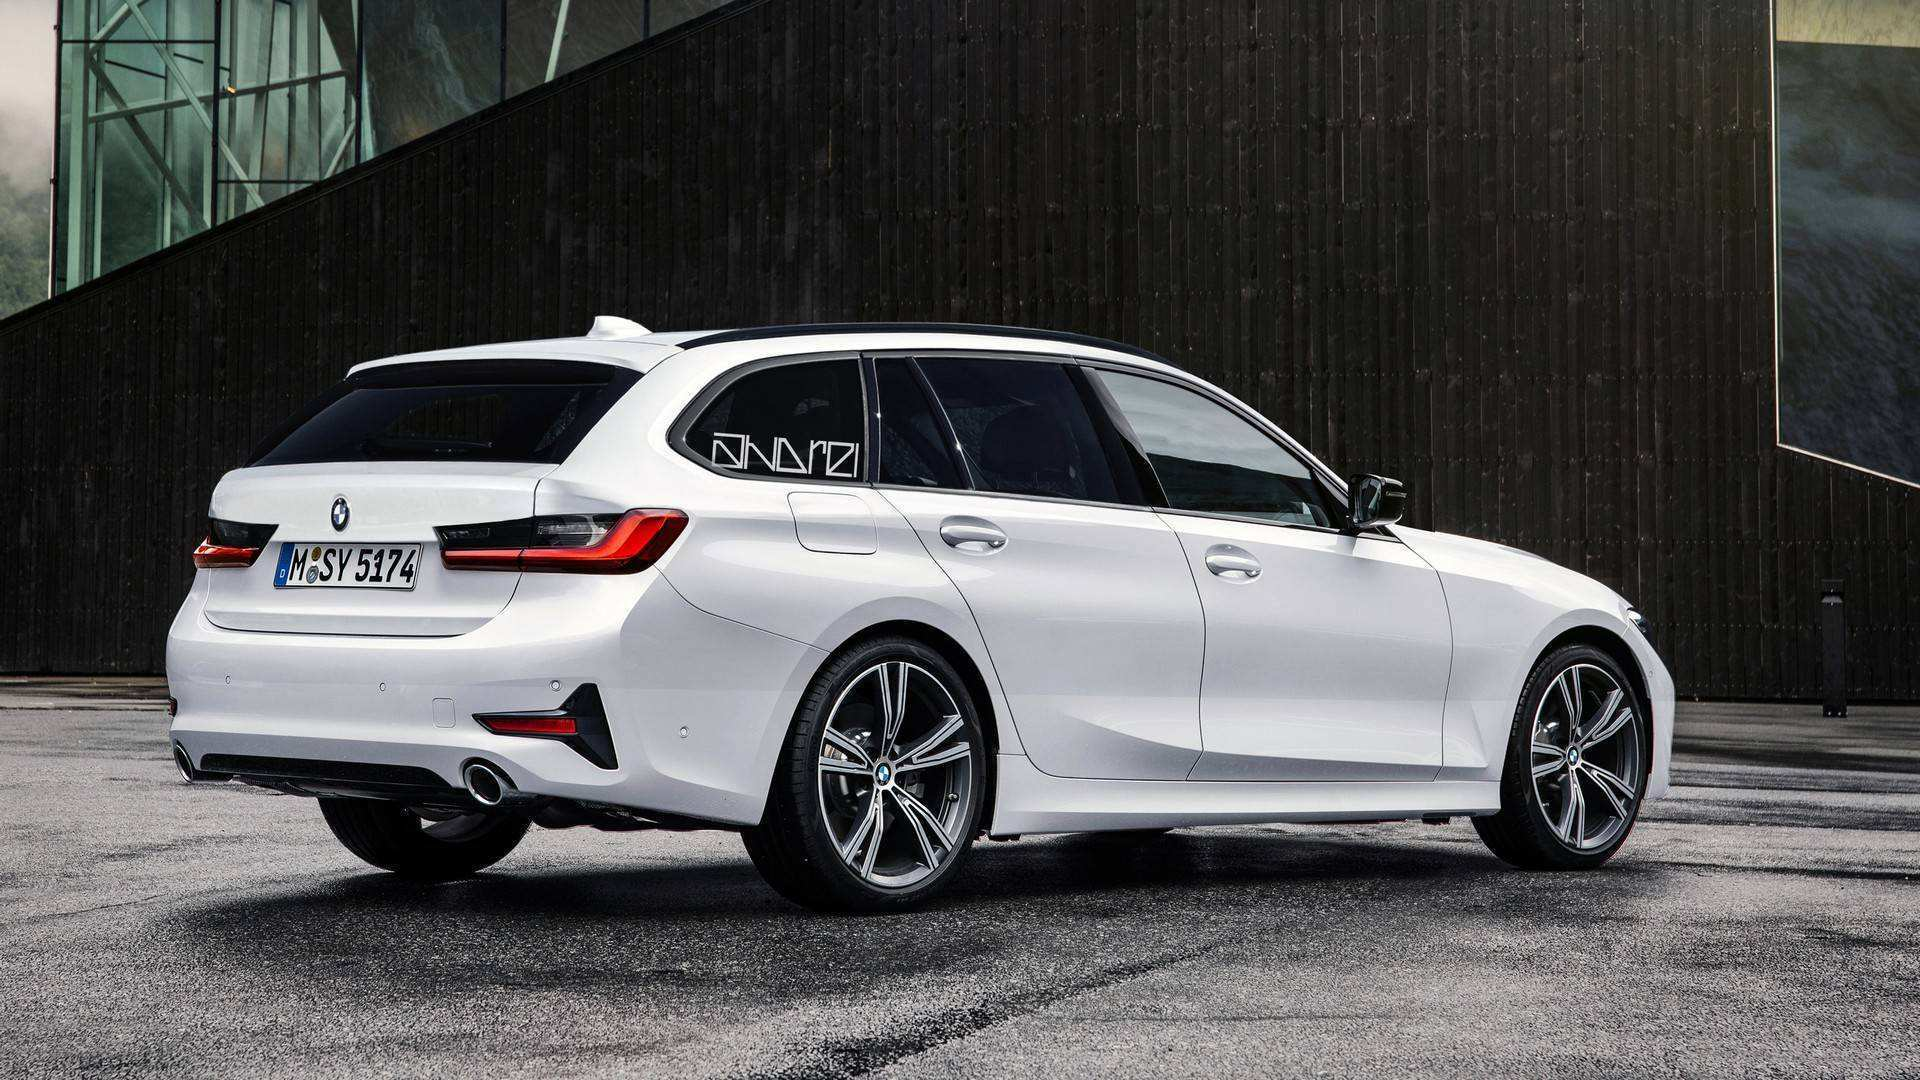 69 A 2020 BMW 3 Series Price